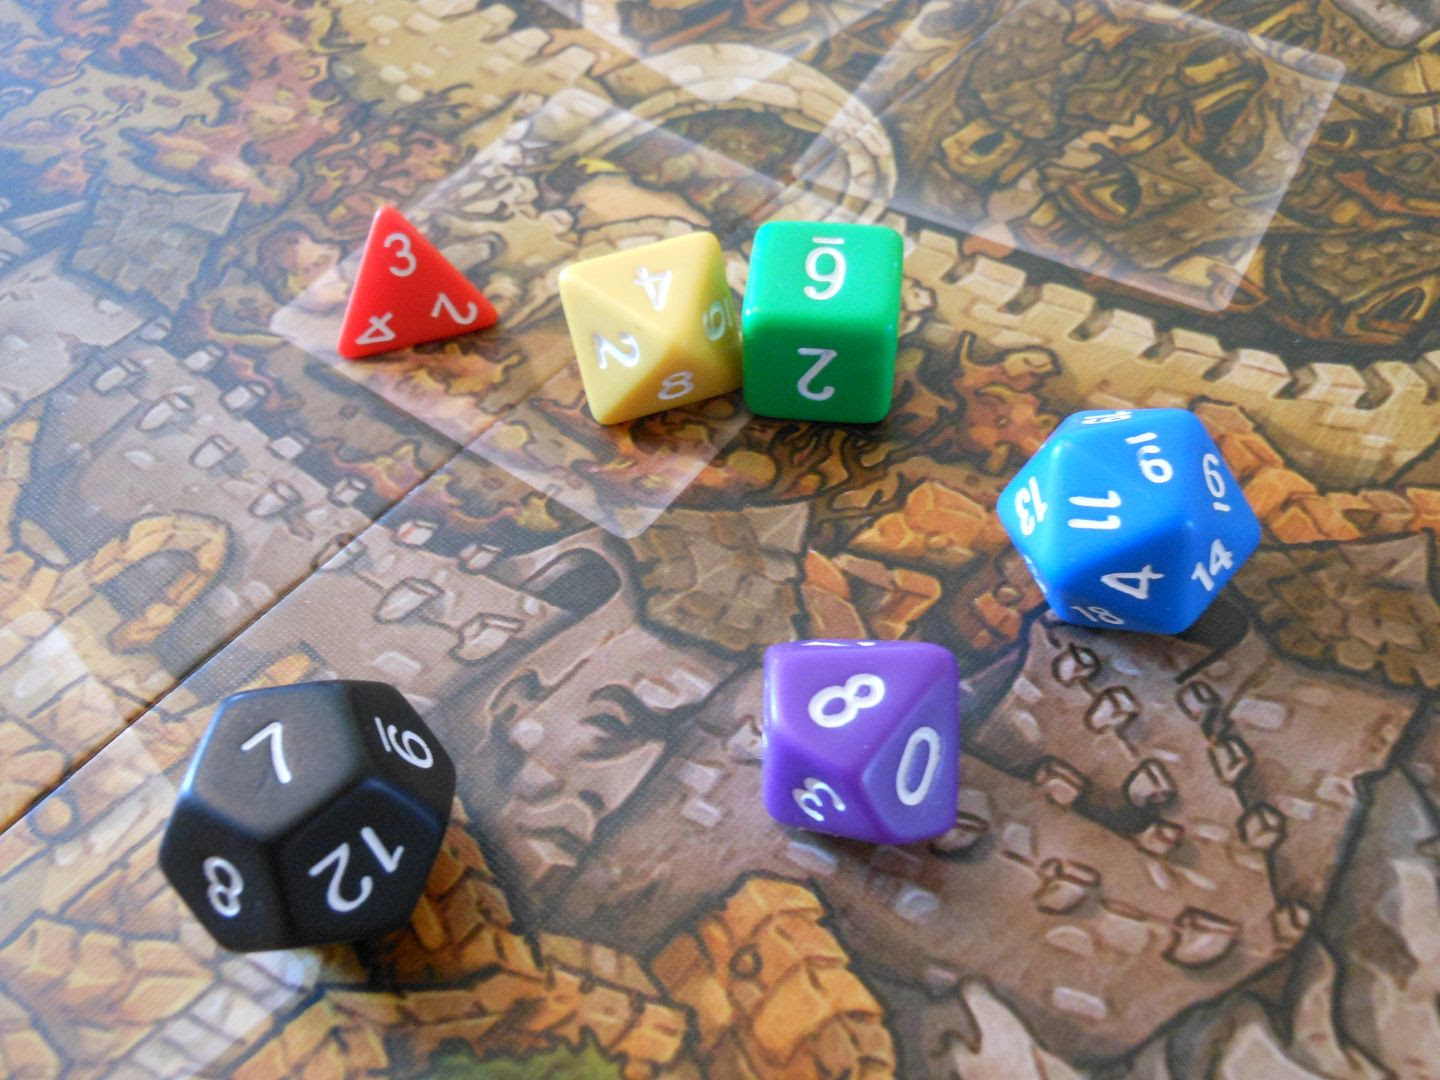 Jim Henson's Labyrinth: The Board Game uses a set of special dice for resolving conflicts.